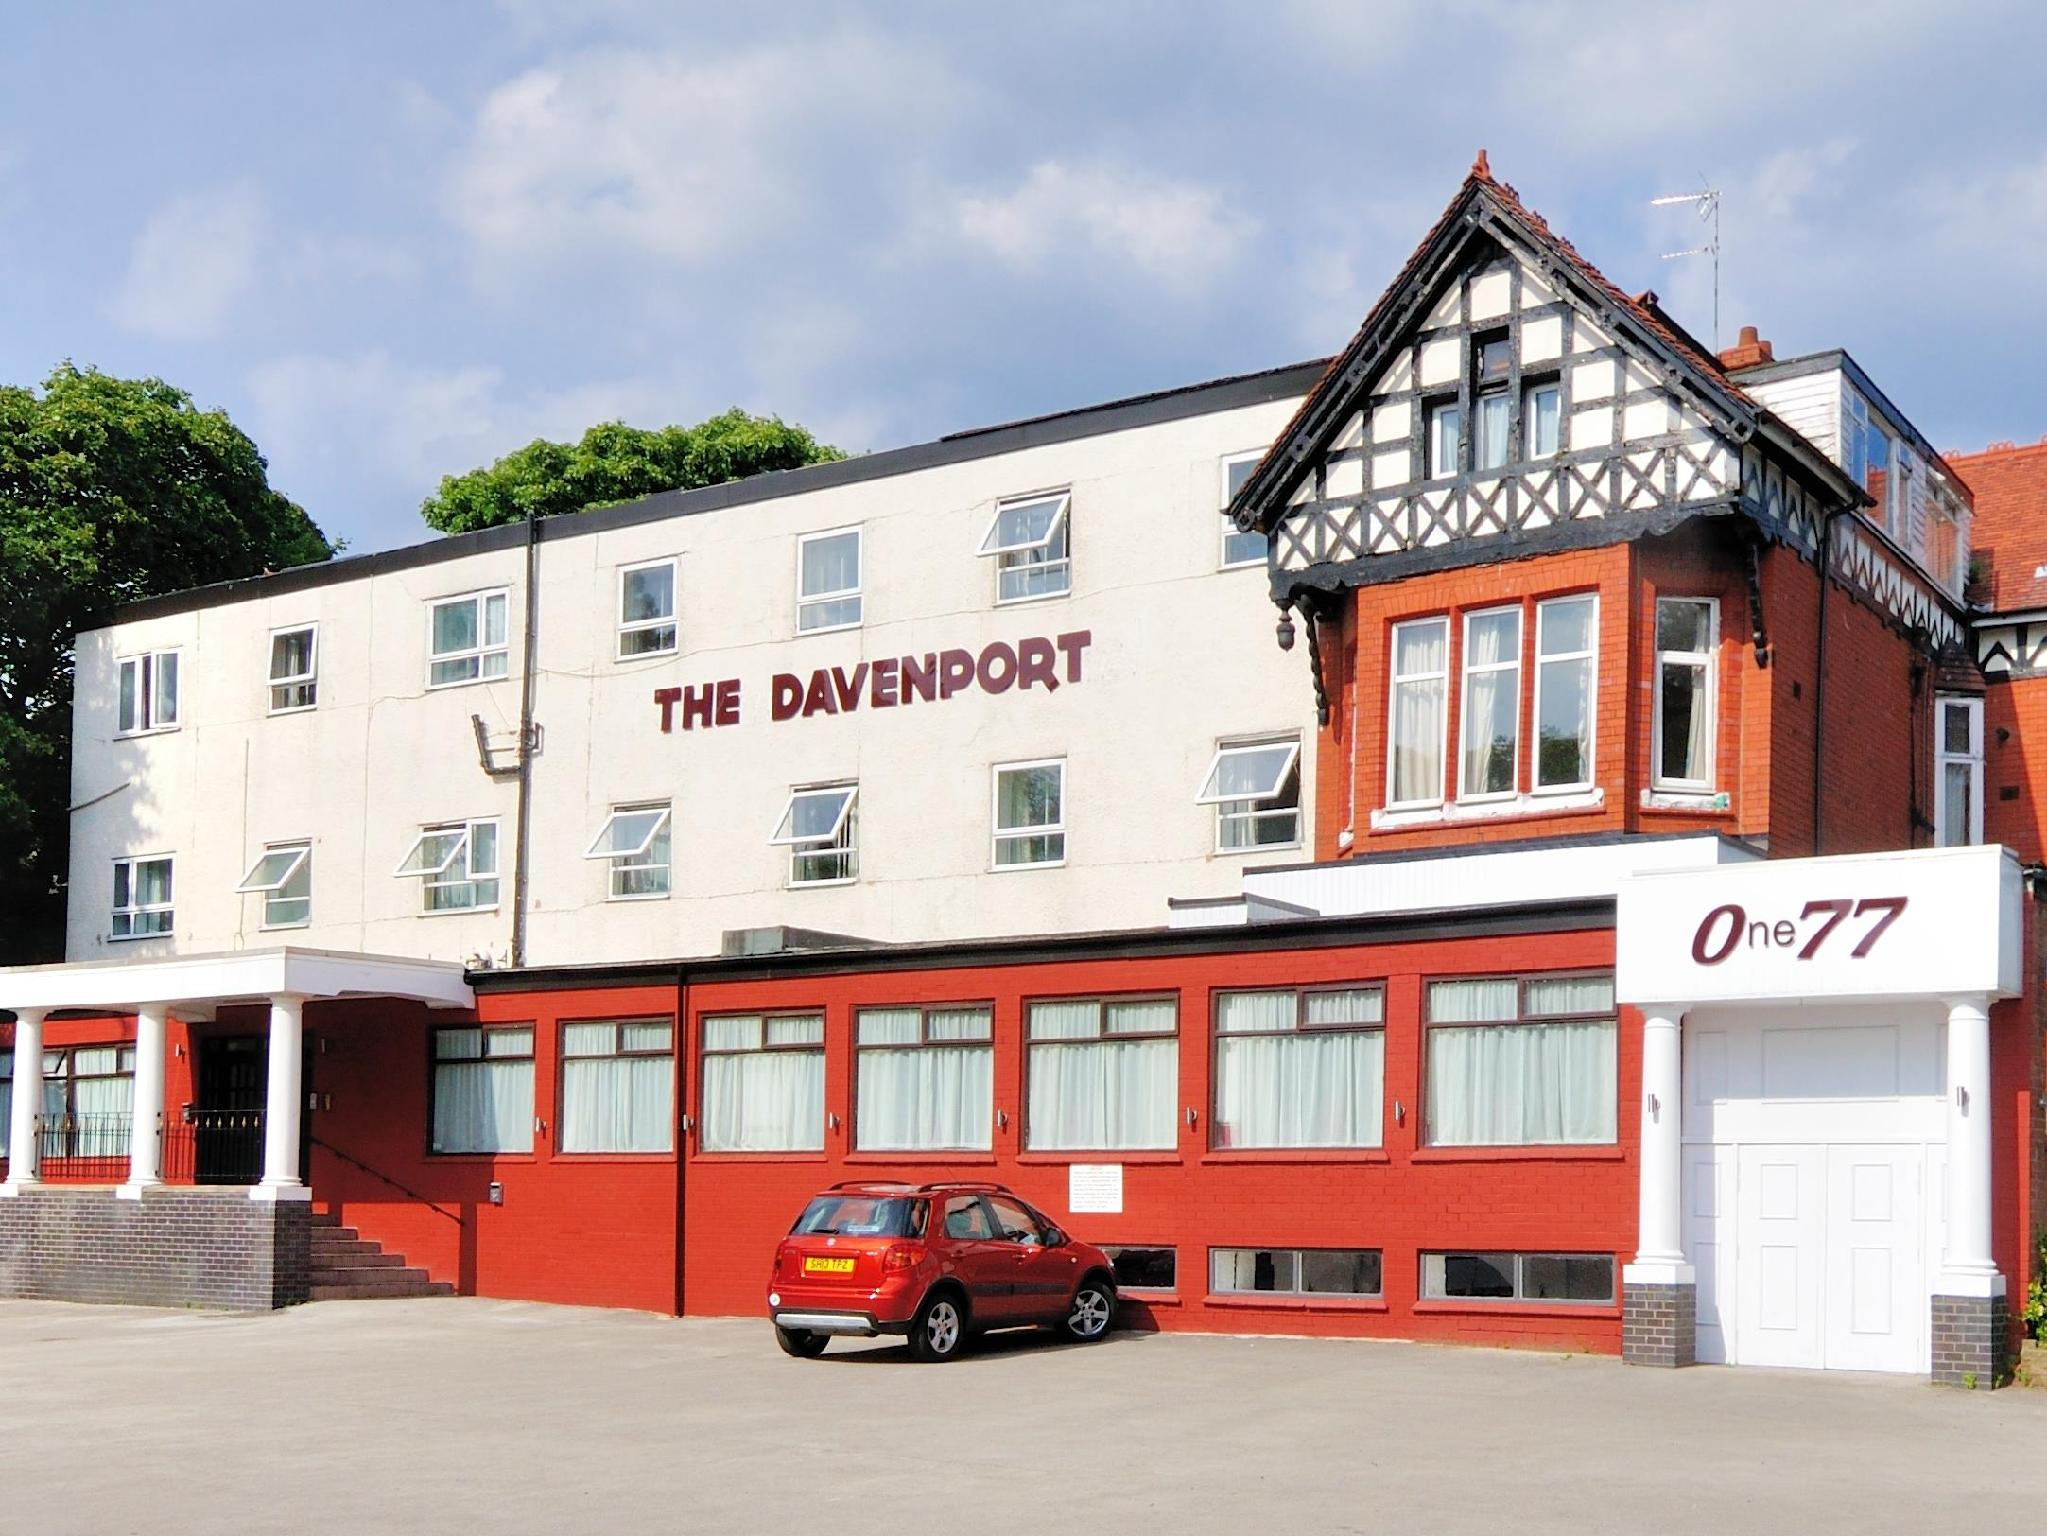 The Davenport Hotel, Stockport